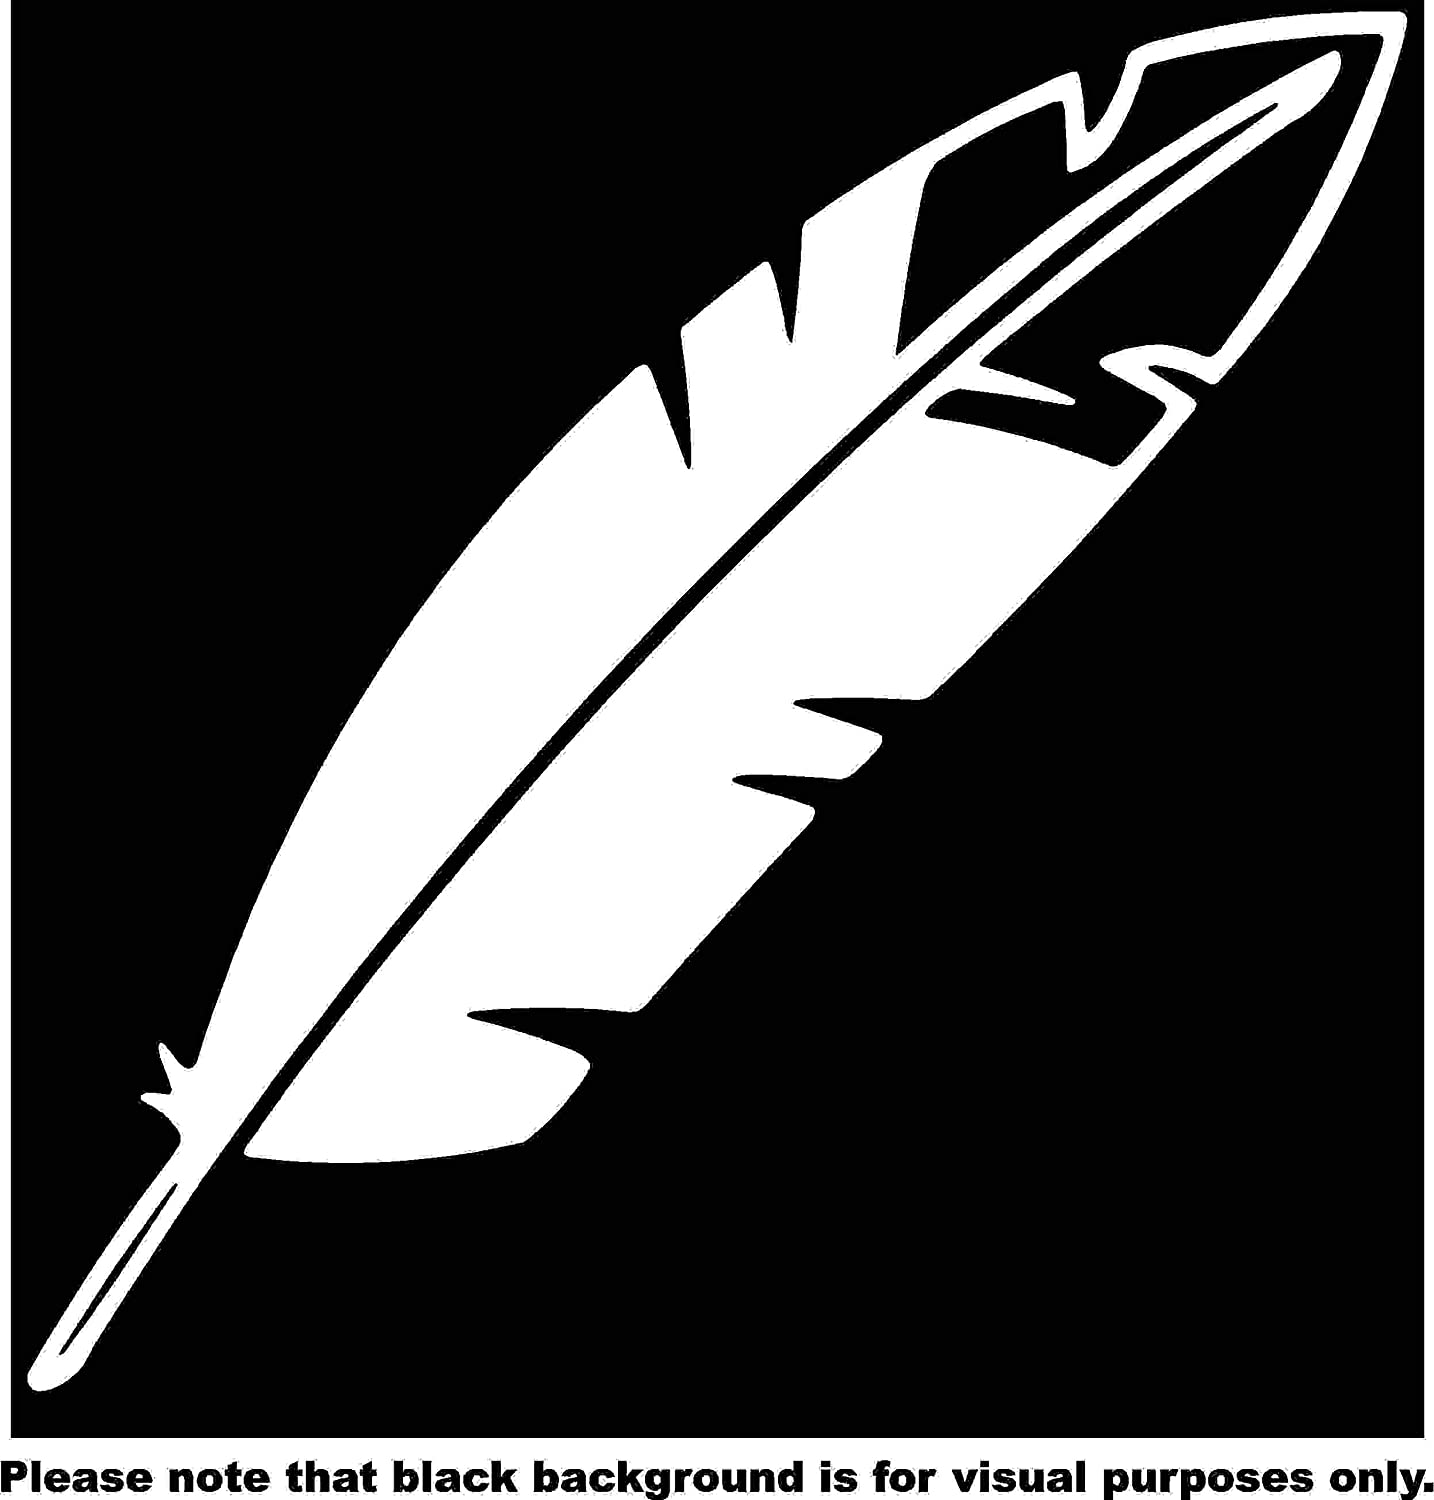 Feather Bald Eagle Native American Car Window Tumblers Wall Decal Sticker Vinyl Laptops Cellphones Phones Tablets Ipads Helmets Motorcycles Computer Towers V and T Gifts